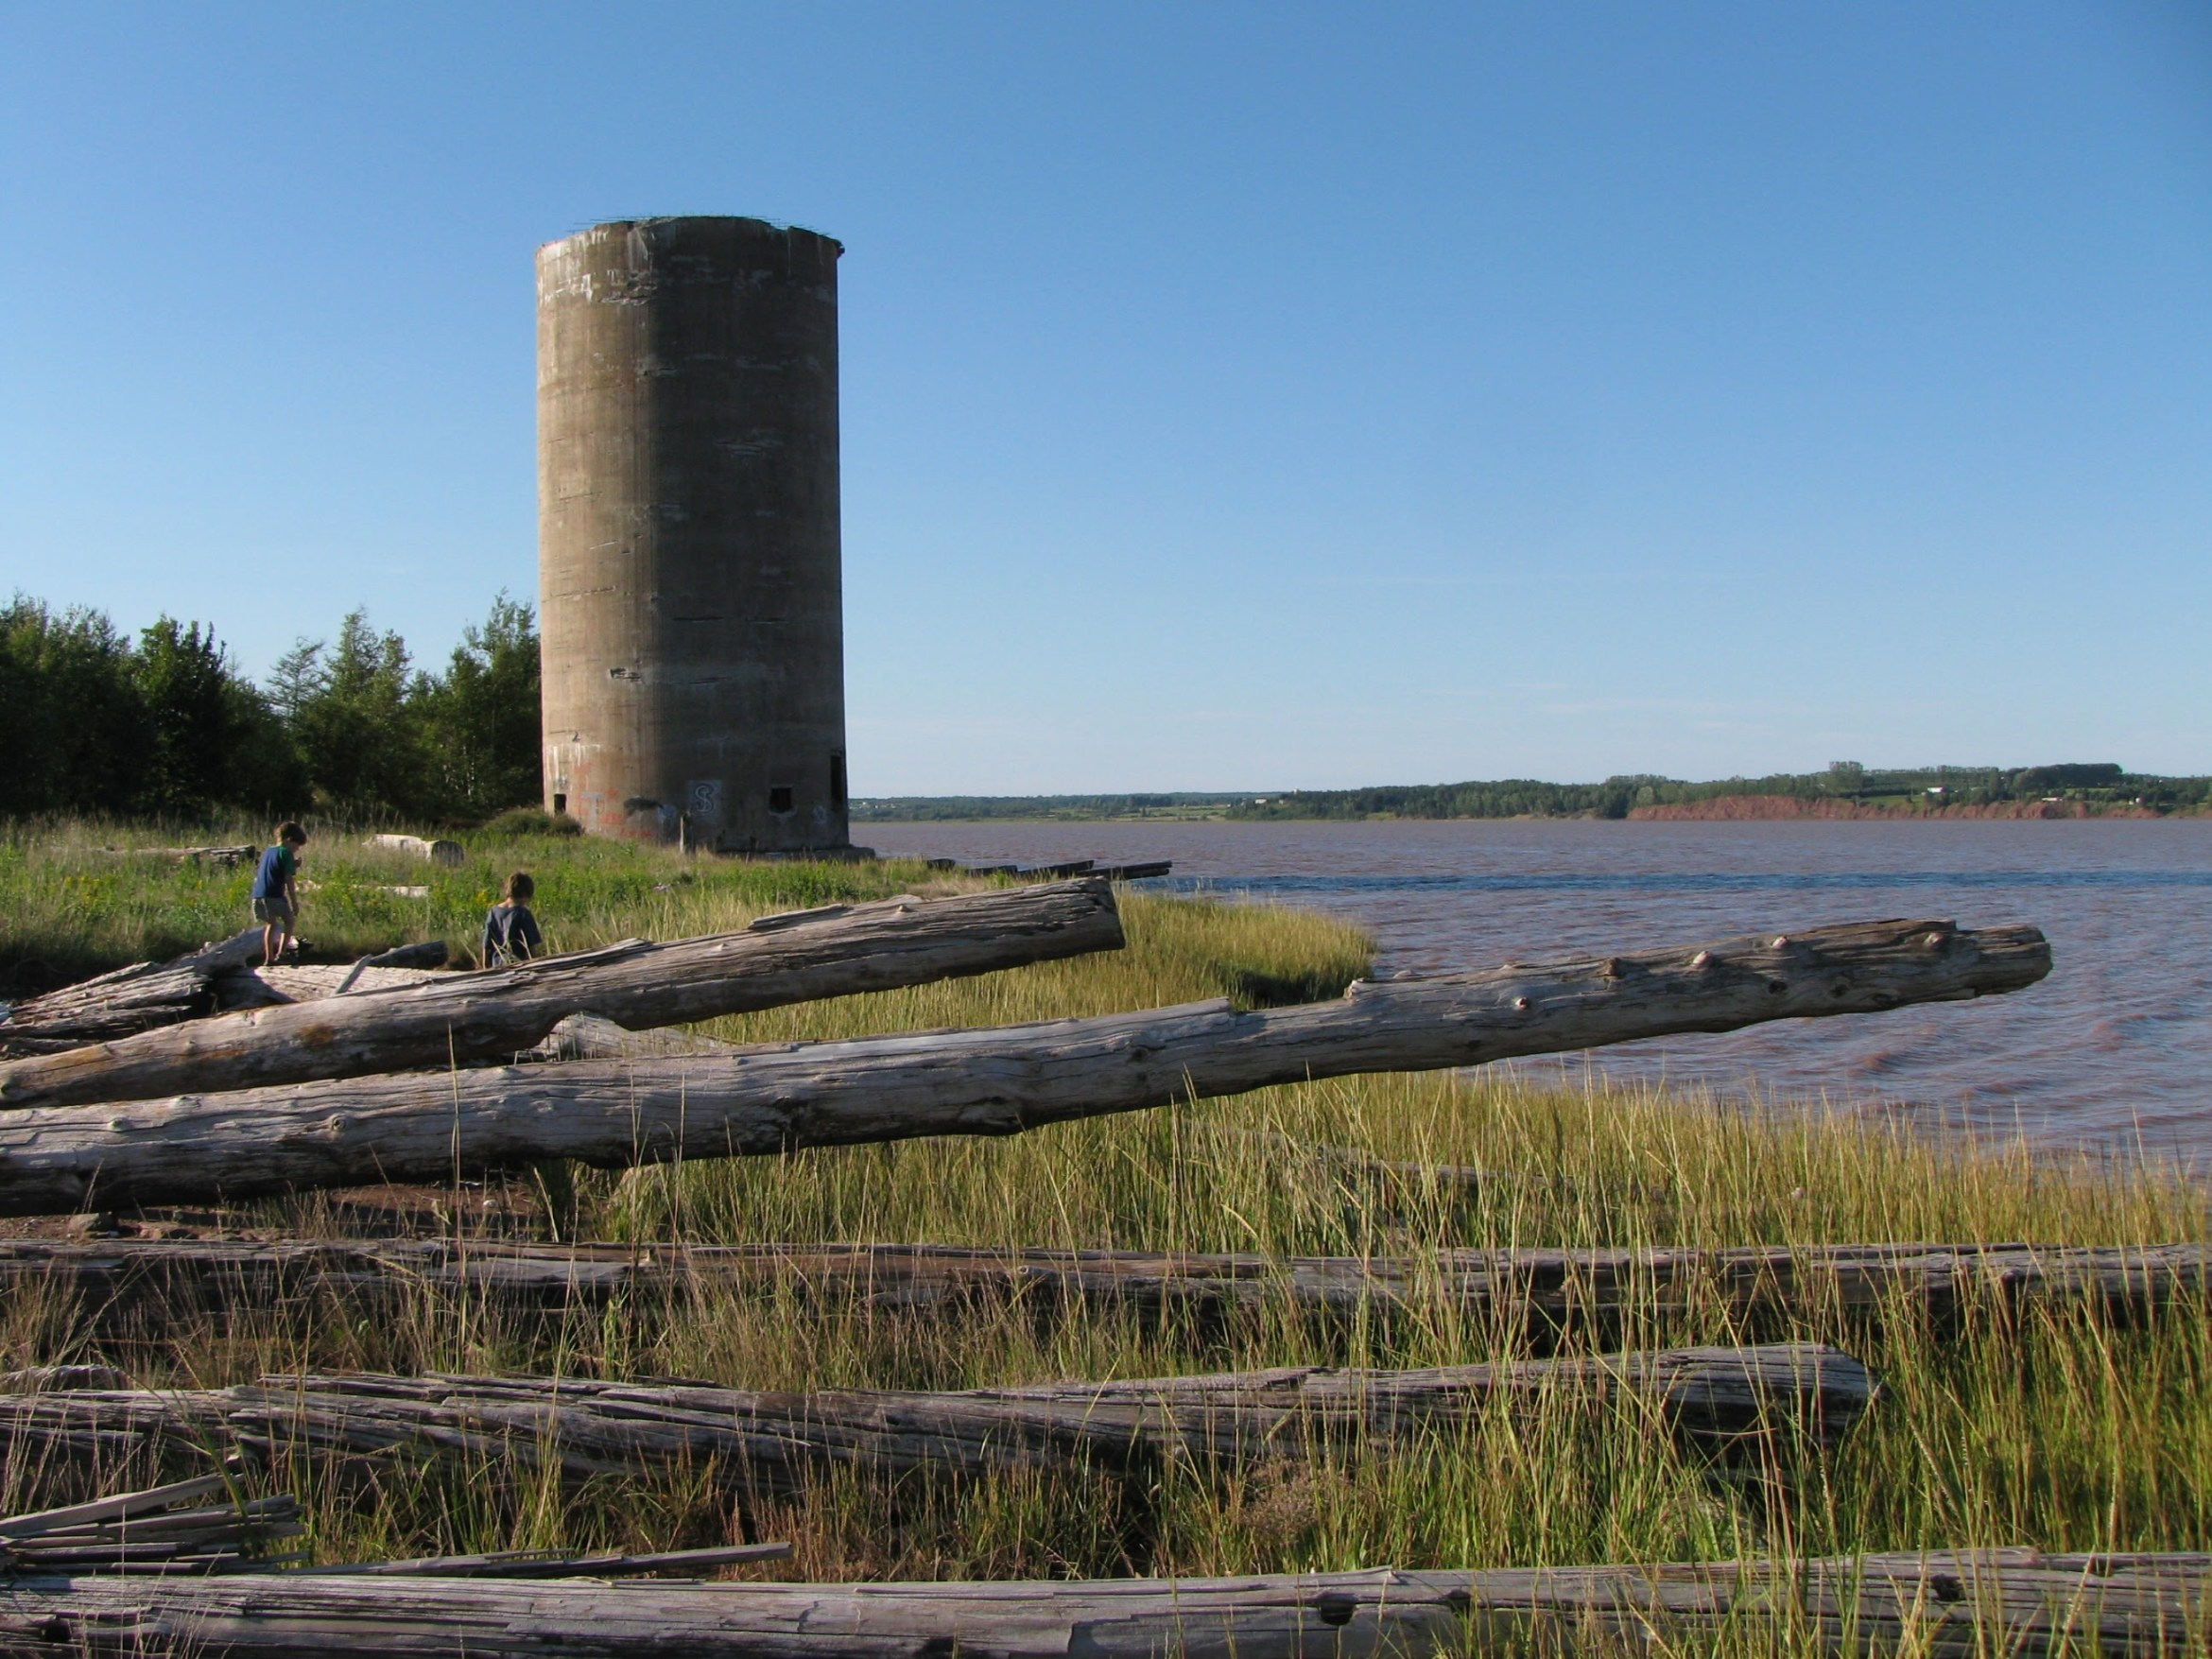 The old silos and wharf in Hillsborough, NB.